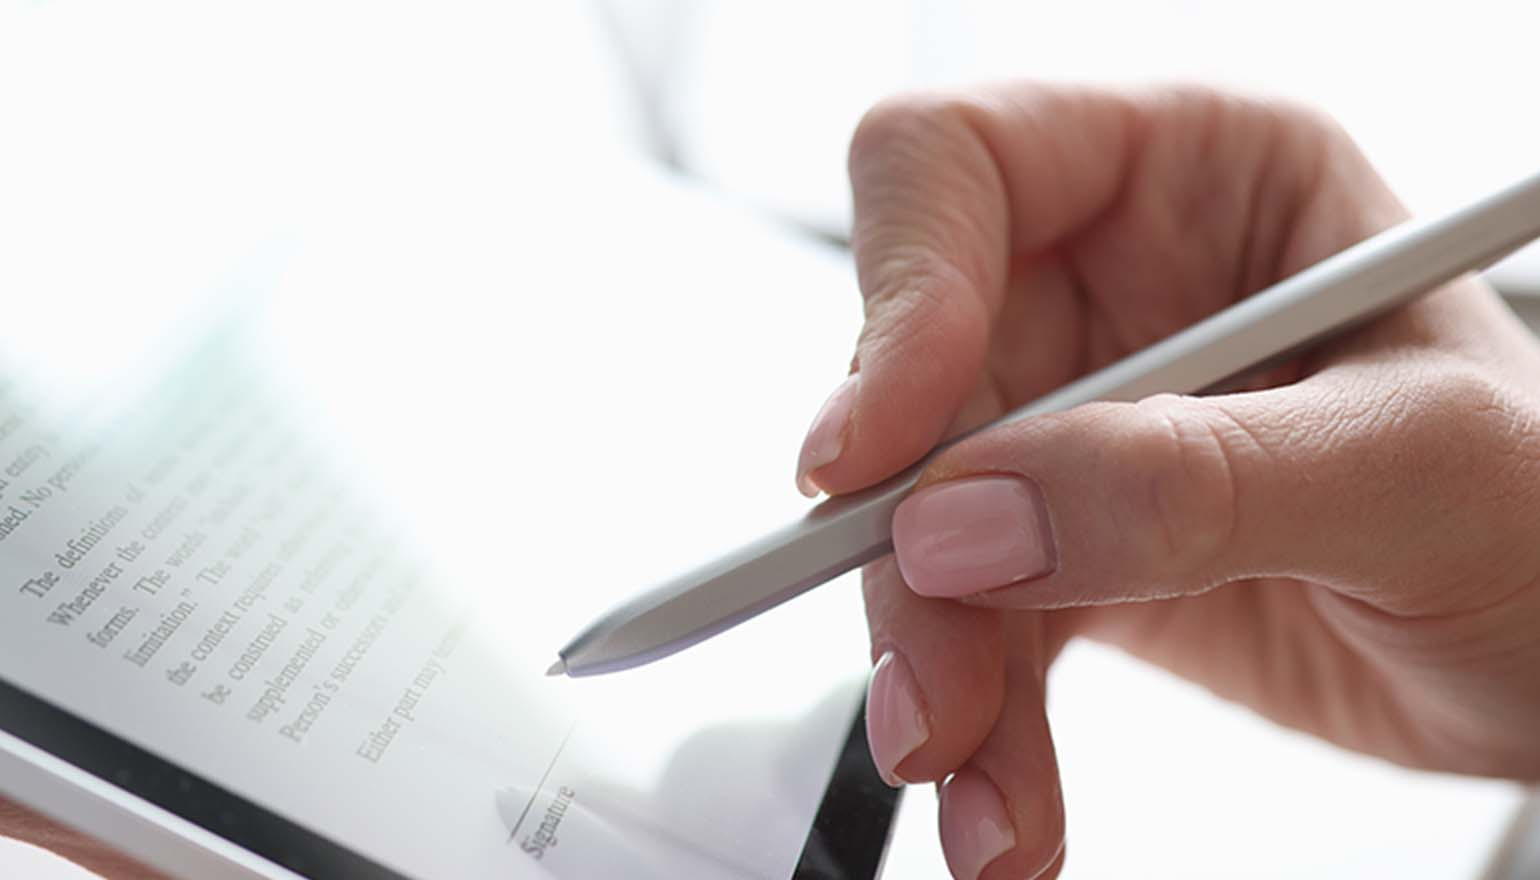 Close-up image of a hand typing on a laptop with folder icons hovering above.